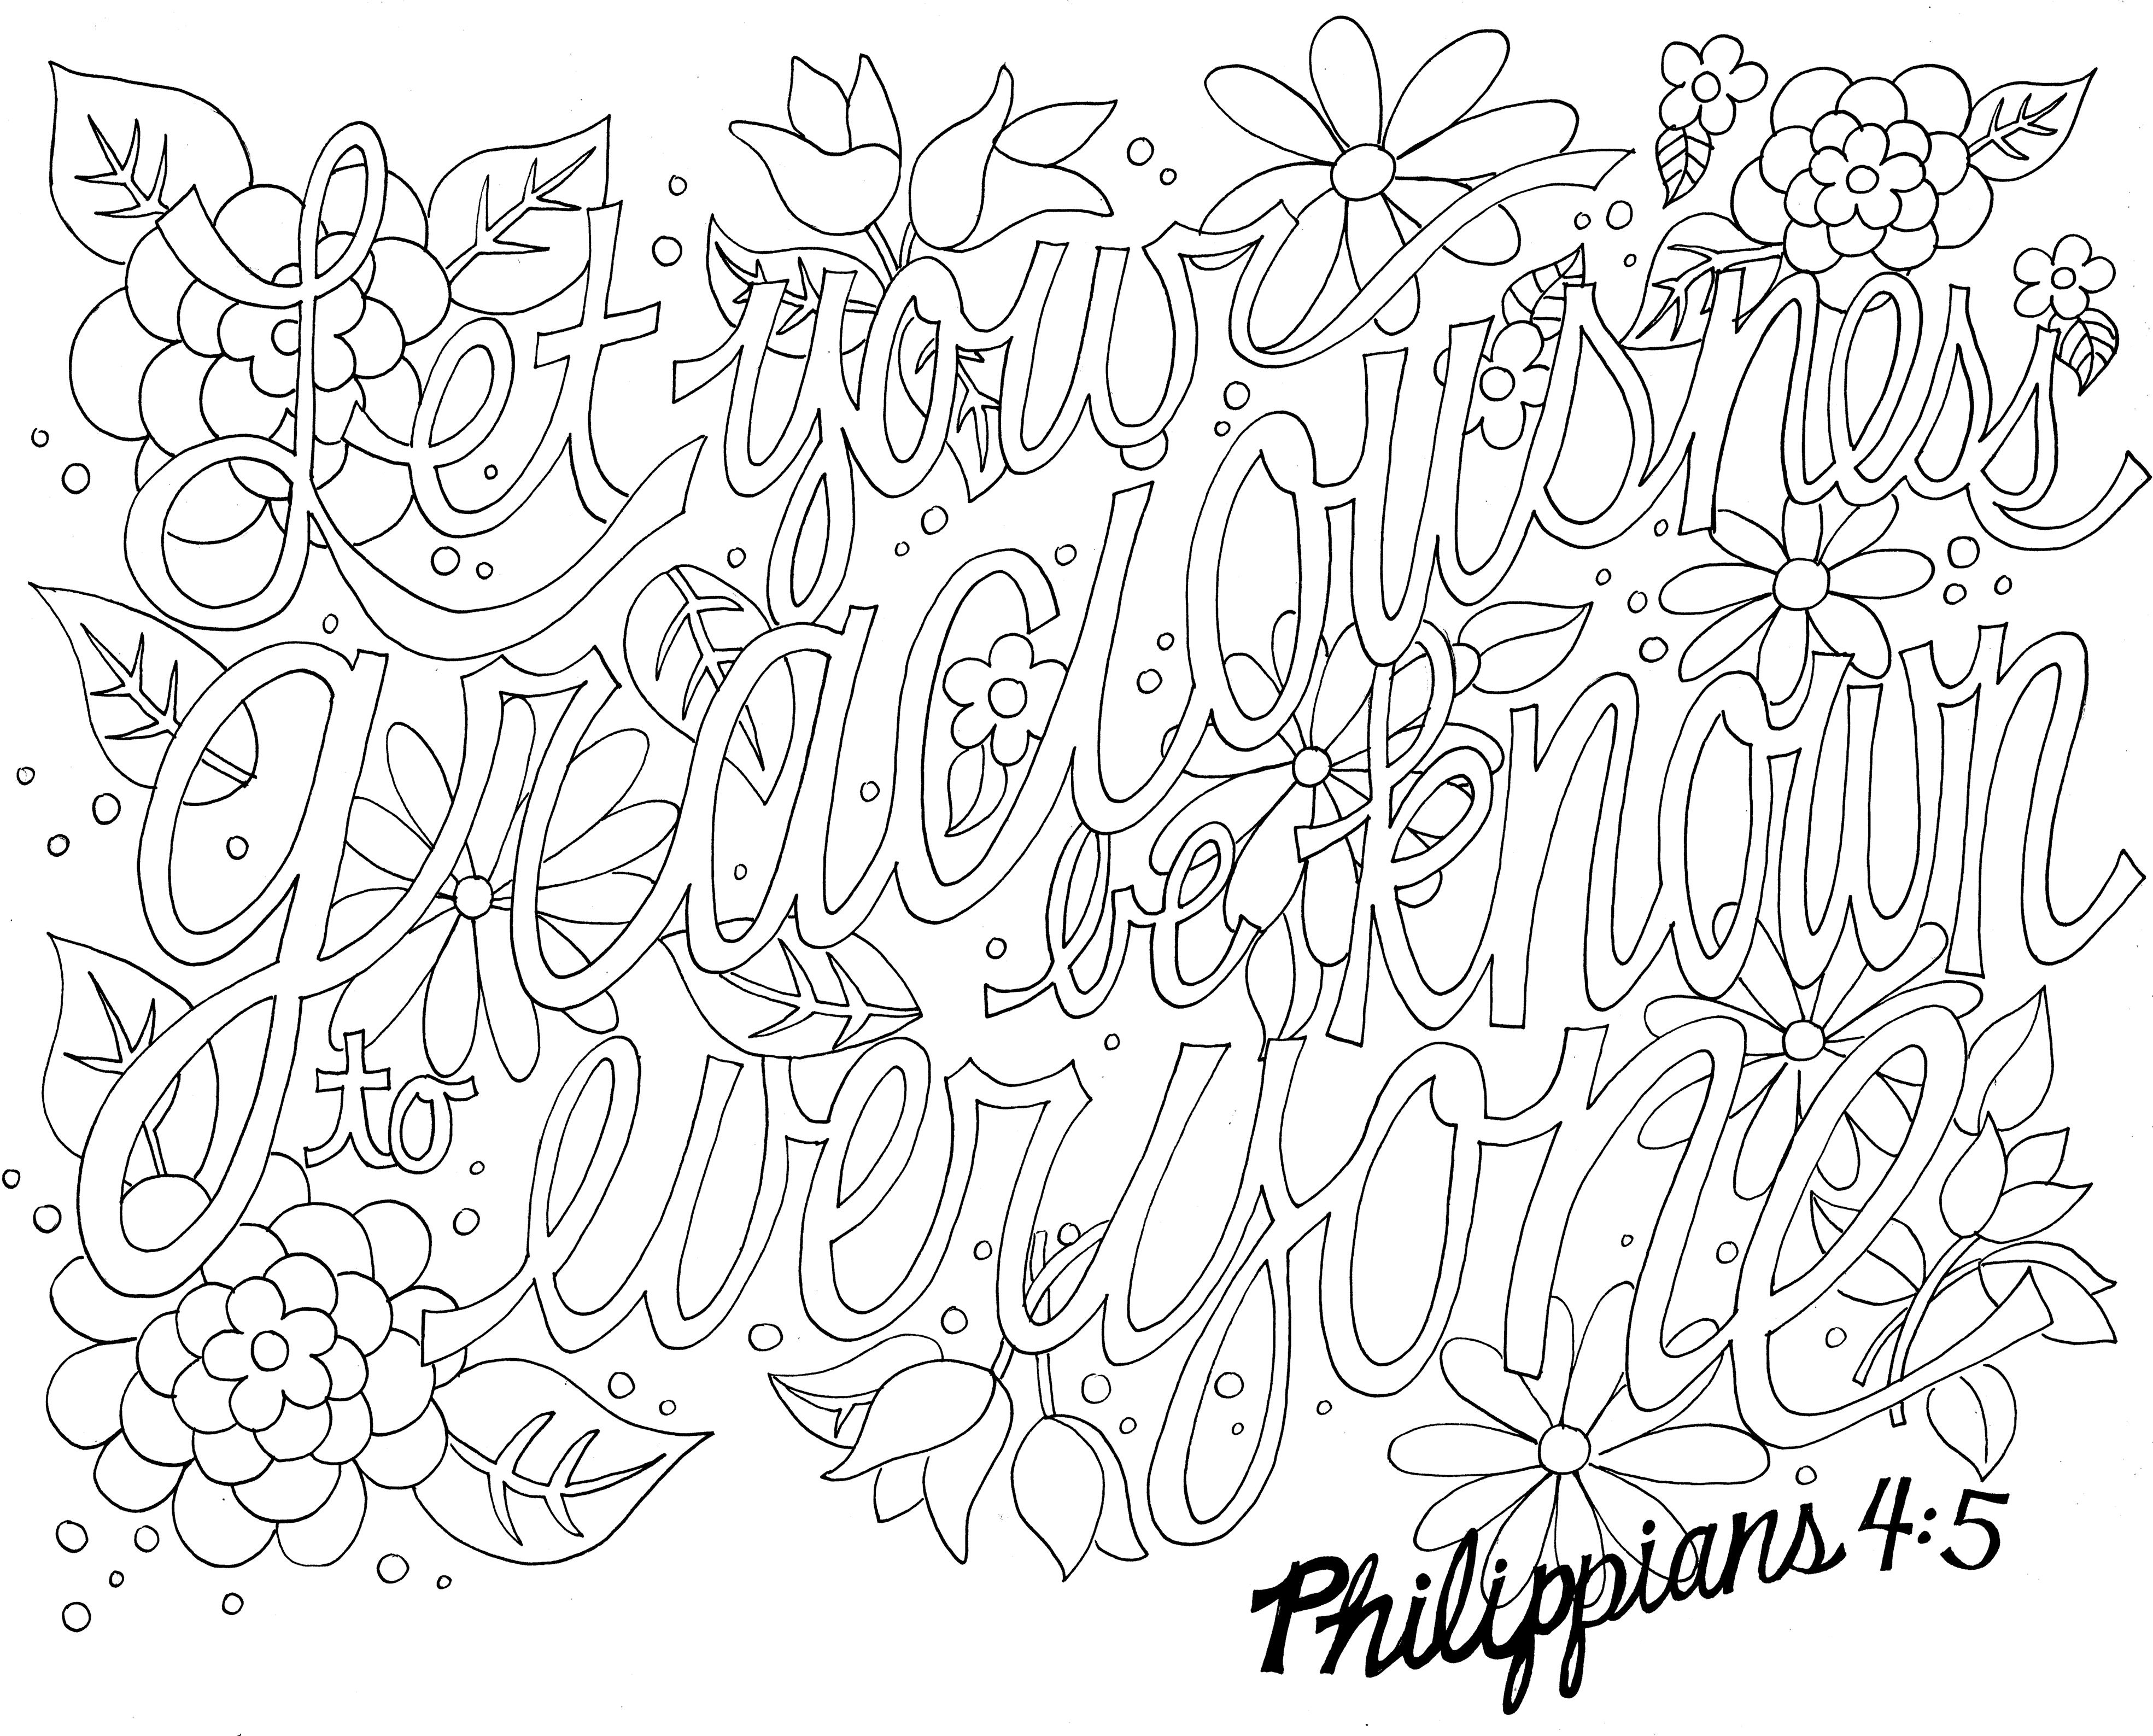 Unique Free Printable Scripture Coloring Pages for Adults Gallery Collection Of Awesome isaac and Rebekah Coloring Pages Design Collection